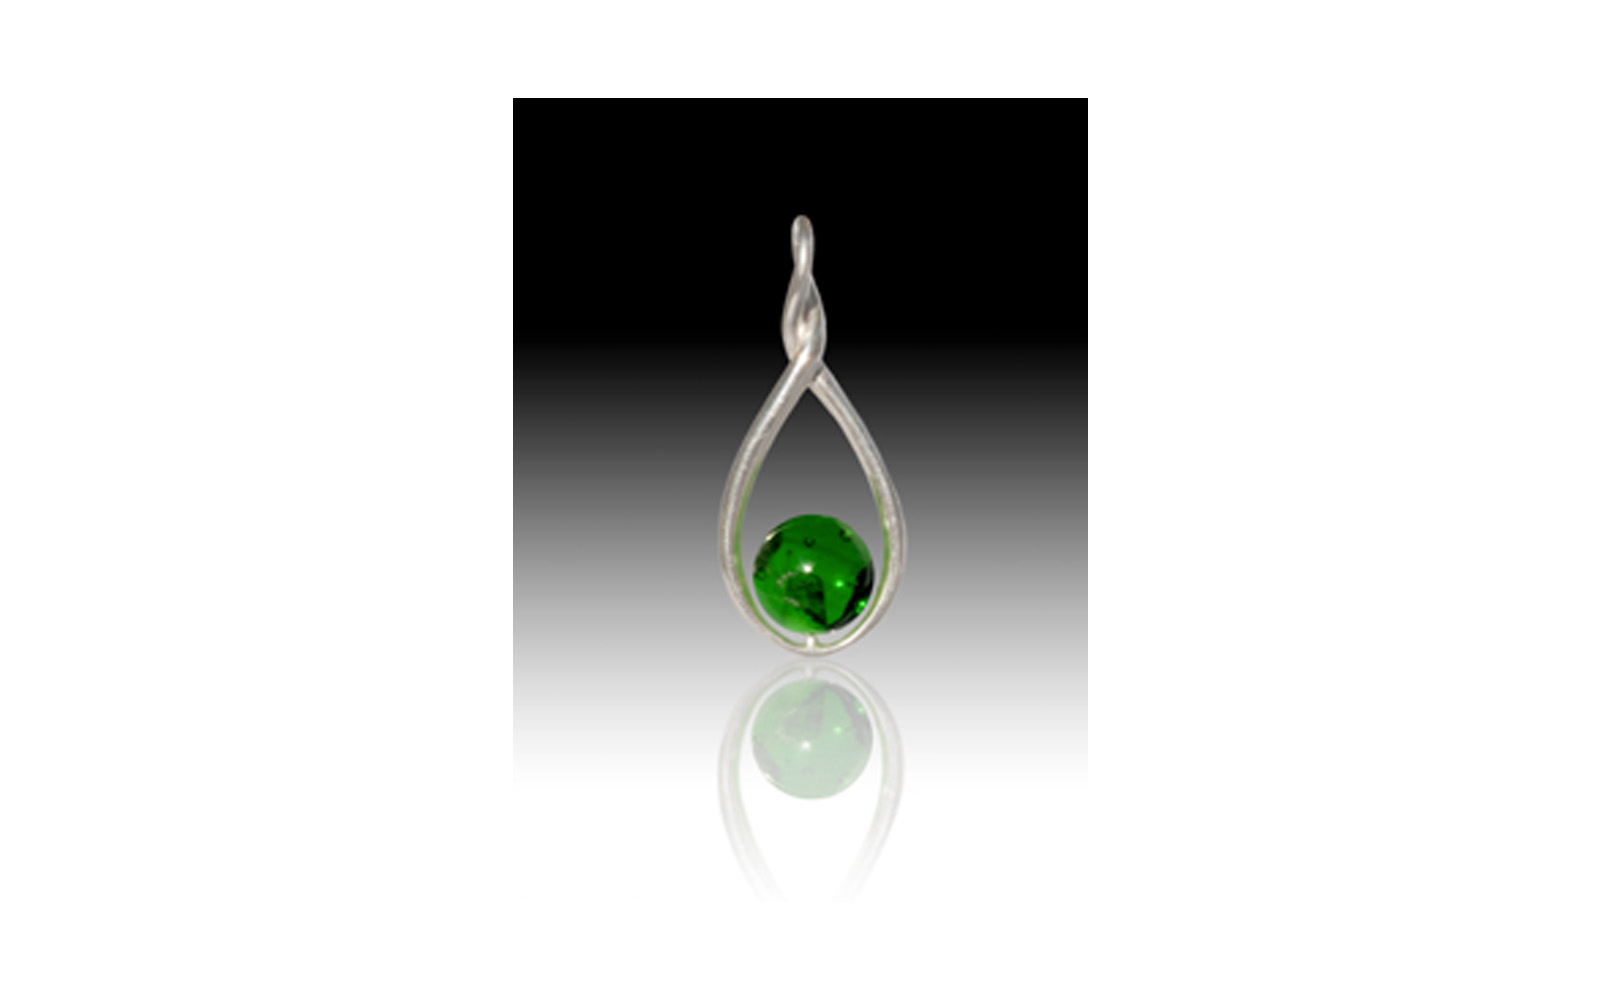 Melody Twist Pendant   This Solid Sterling Silver pendant has a touch of elegance by combining Sterling Silver and a 9mm glass pearl containing your loved one's cremated remains. This pendant's bail opening measures 3.1mm and its dimensions are 33 x 14mm. This keepsake comes in Red, Orange, Yellow, Green, Blue, Purple, Lavender, Pink, Gray, Black, and Turquoise   $195